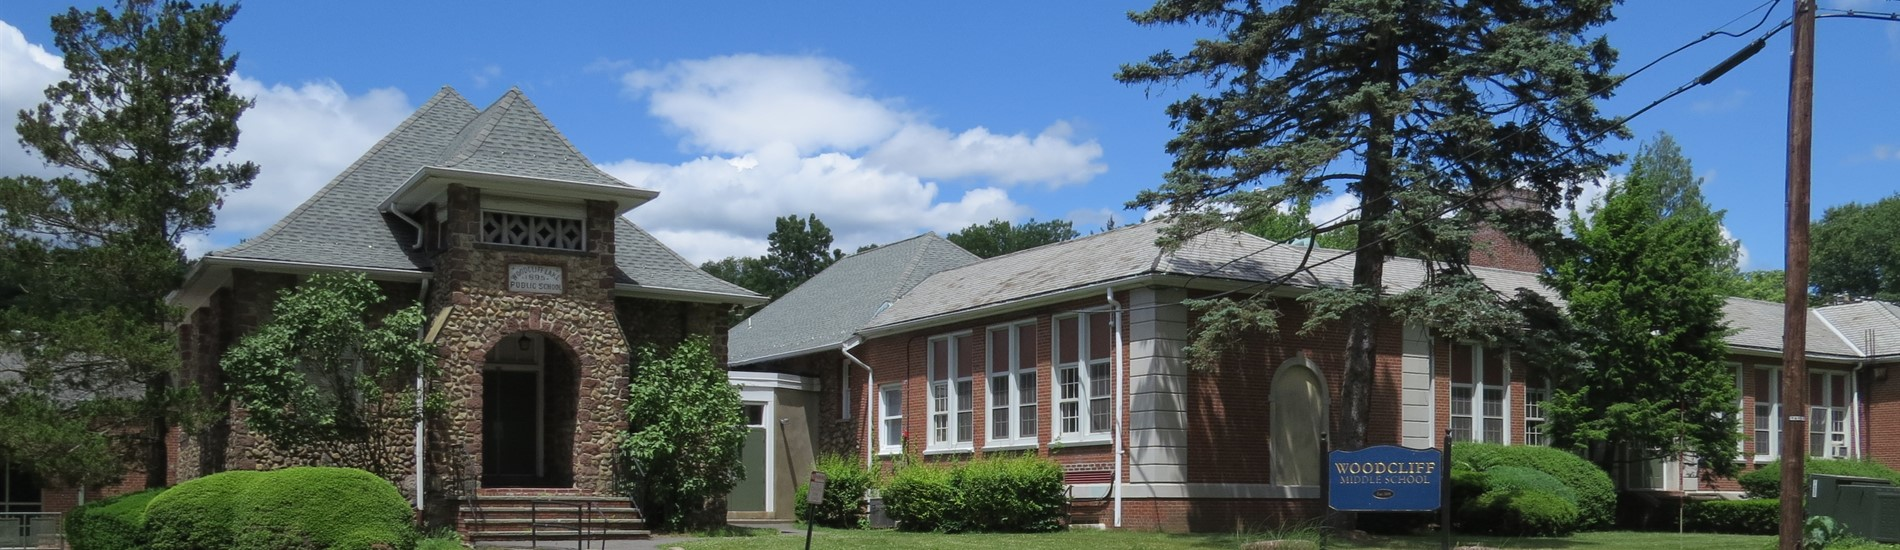 Woodcliff Middle School with Old School House and sign